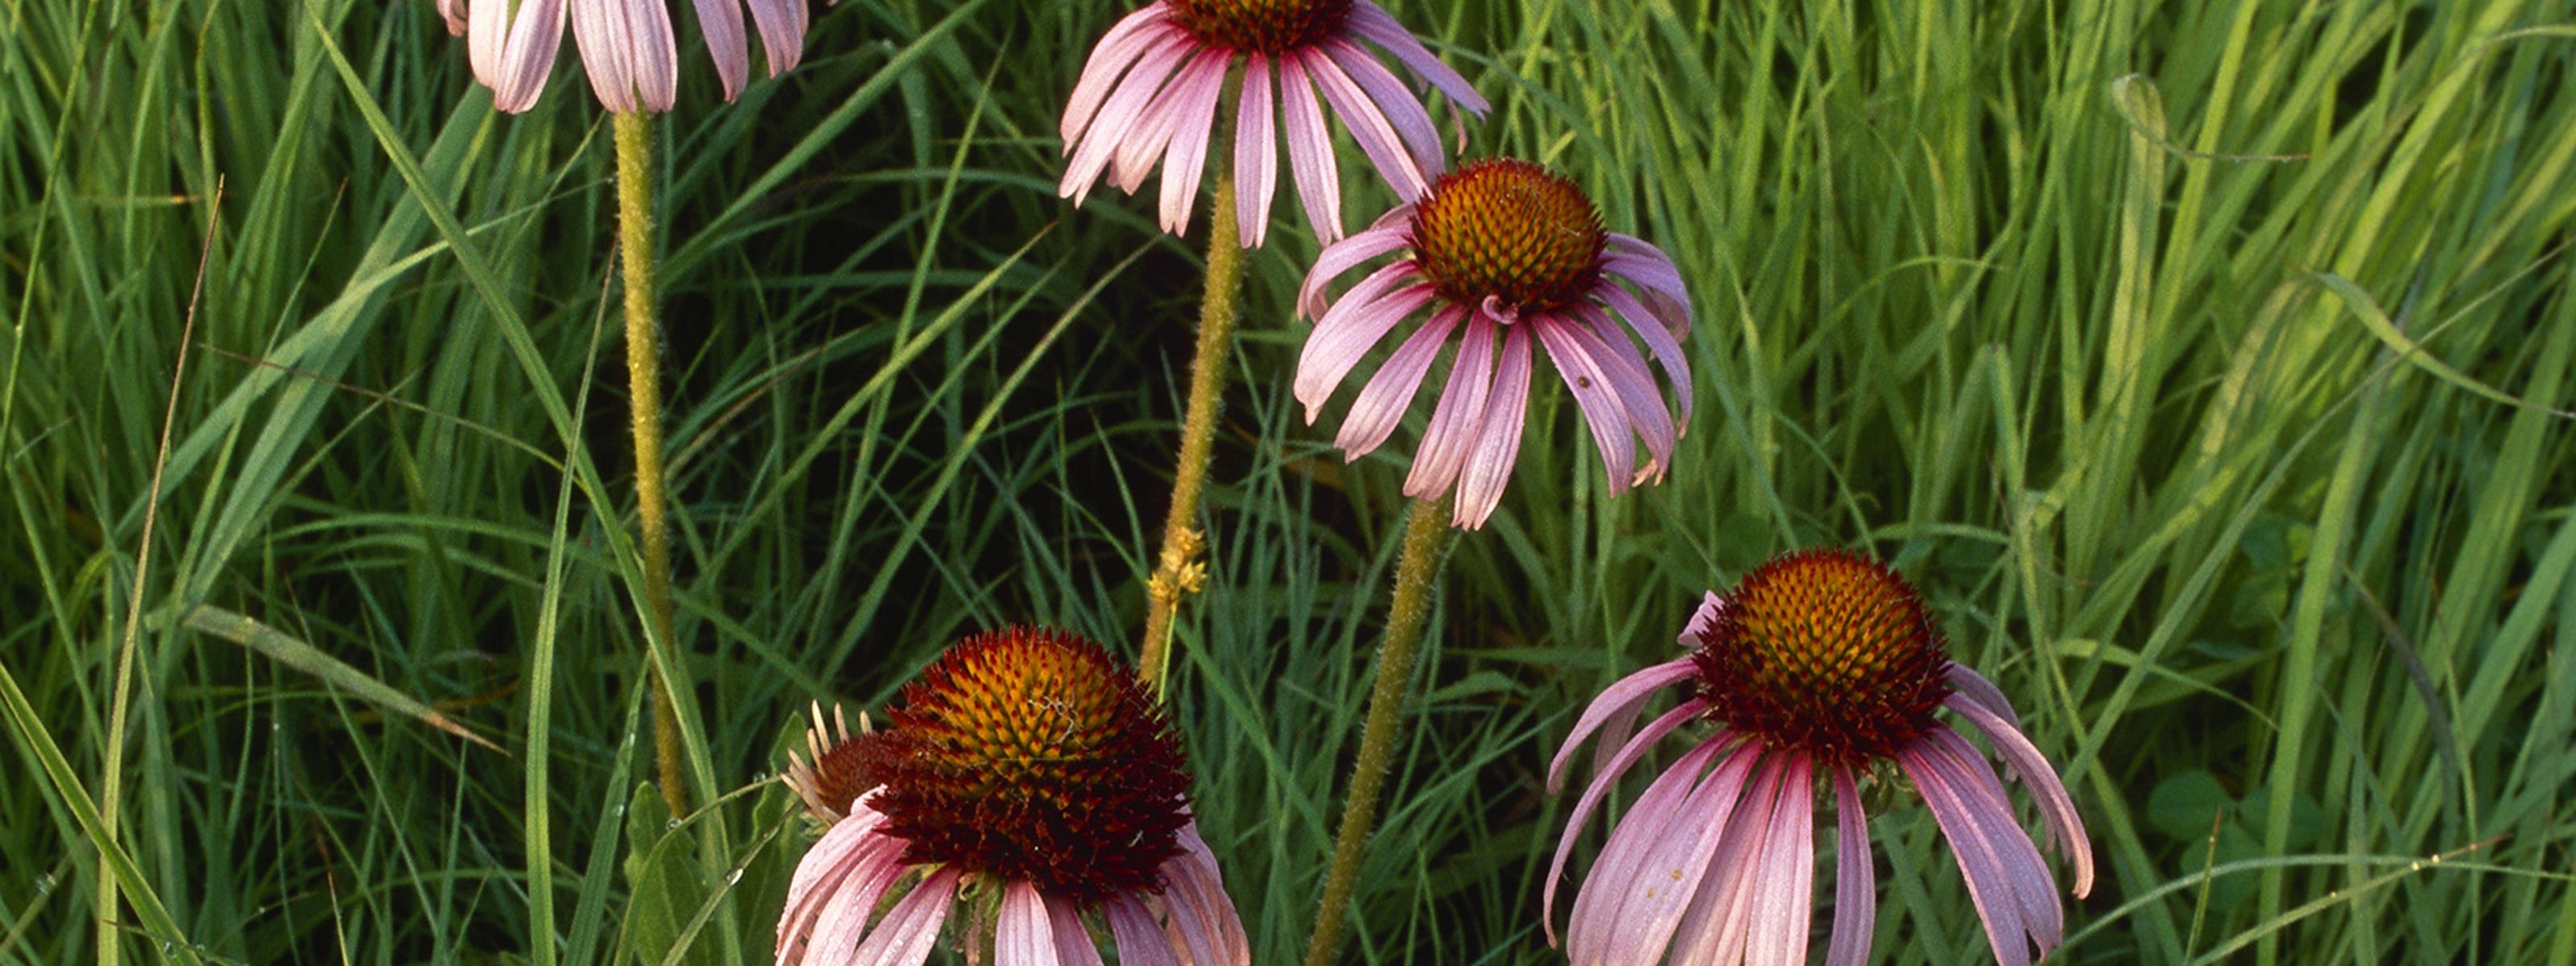 Purple coneflowers emerge from tall grasses.